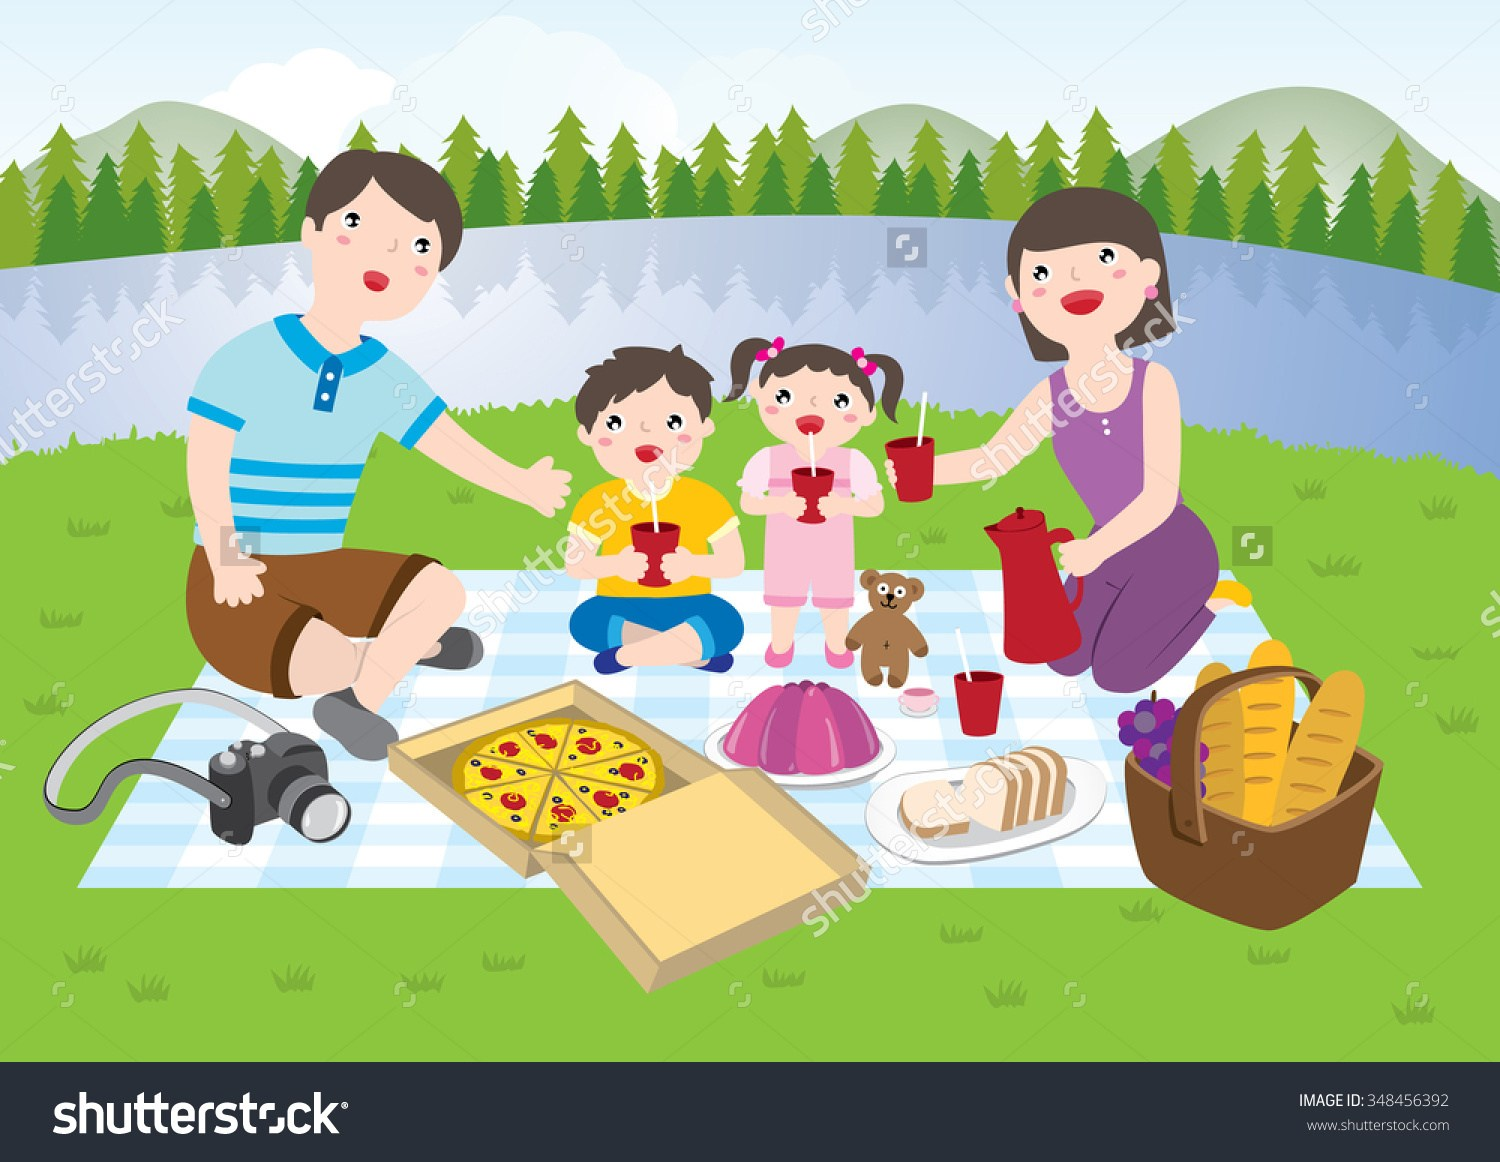 Family in park clipart 8 » Clipart Portal.